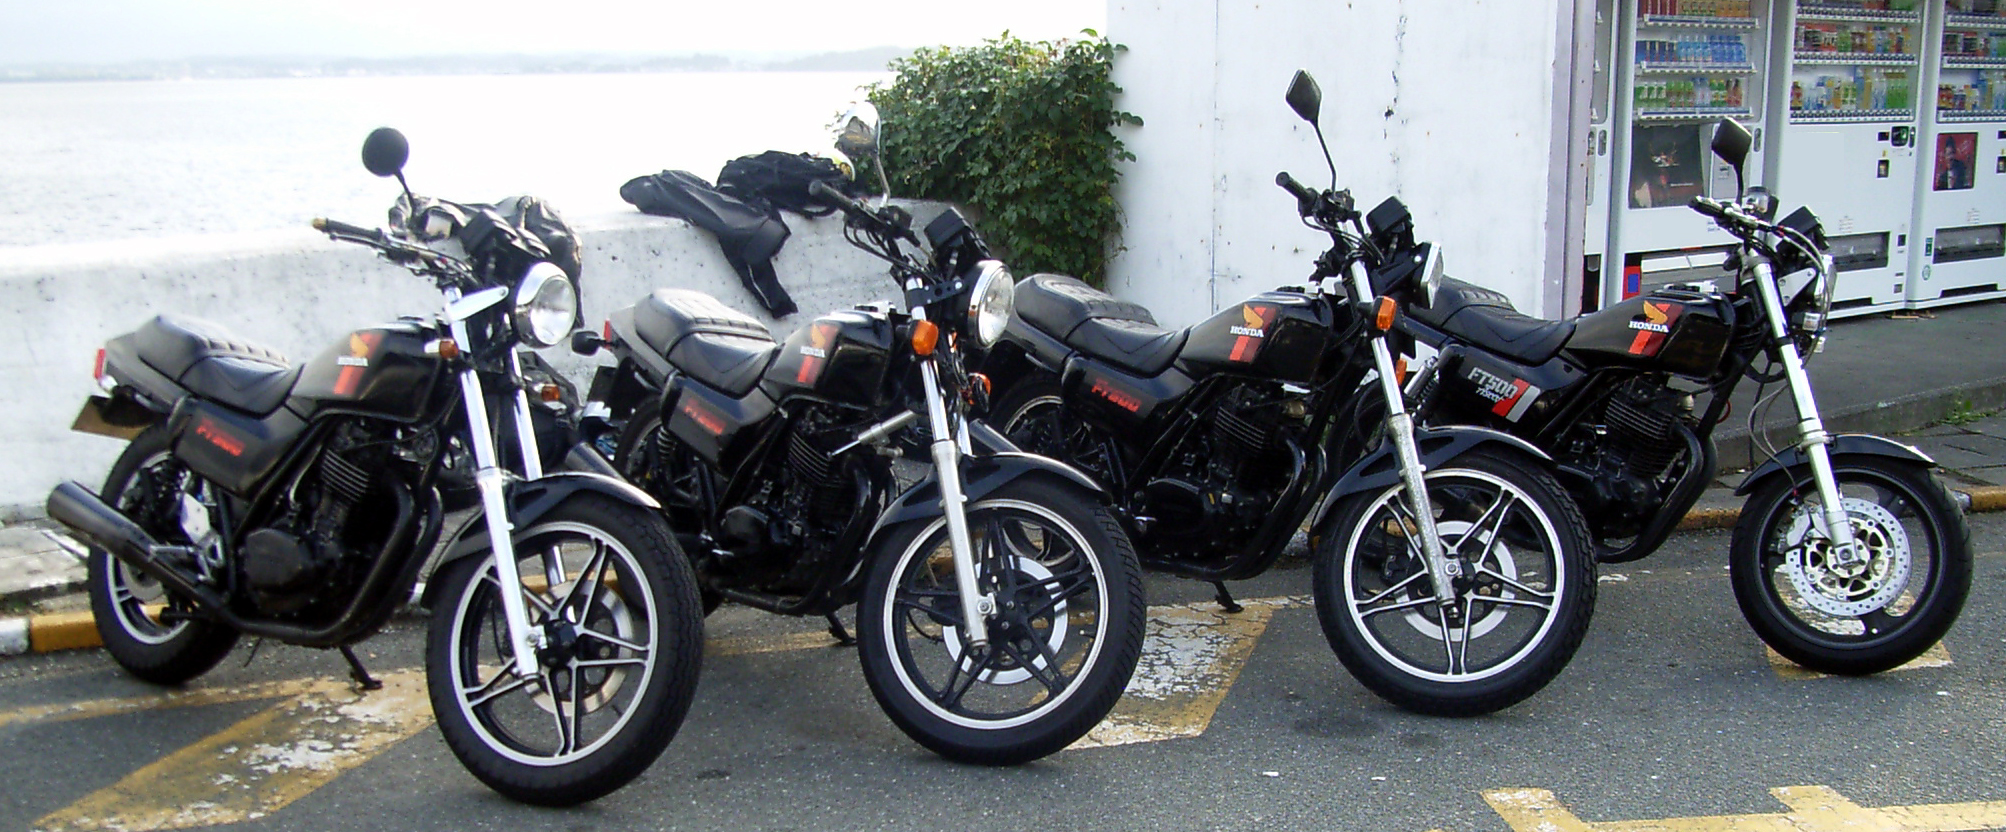 Honda HONDA_FT500_motorcycles